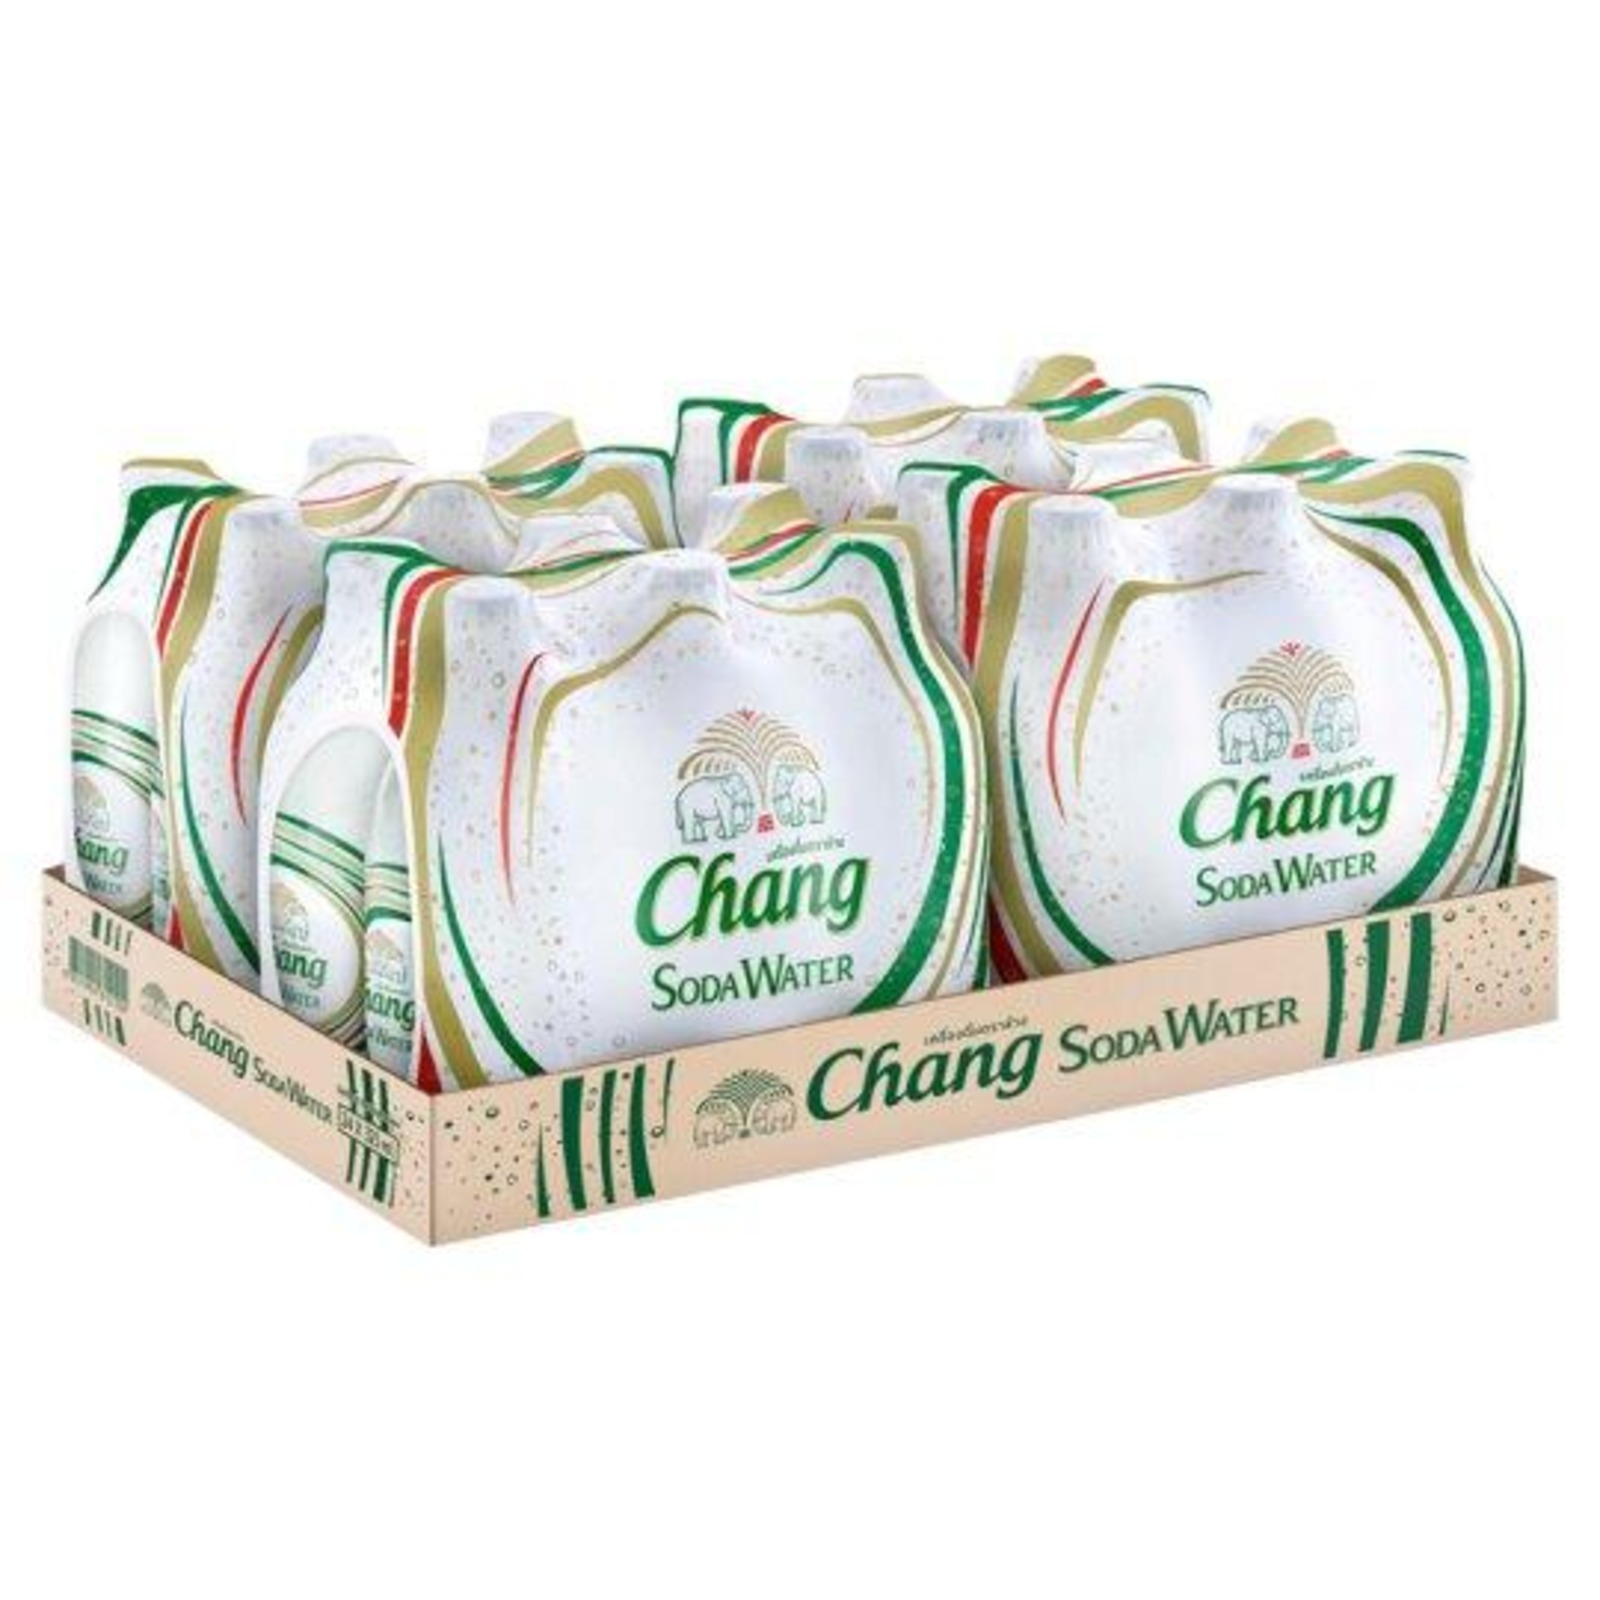 Chang Soda Water Glass Bottles x 24 bottles